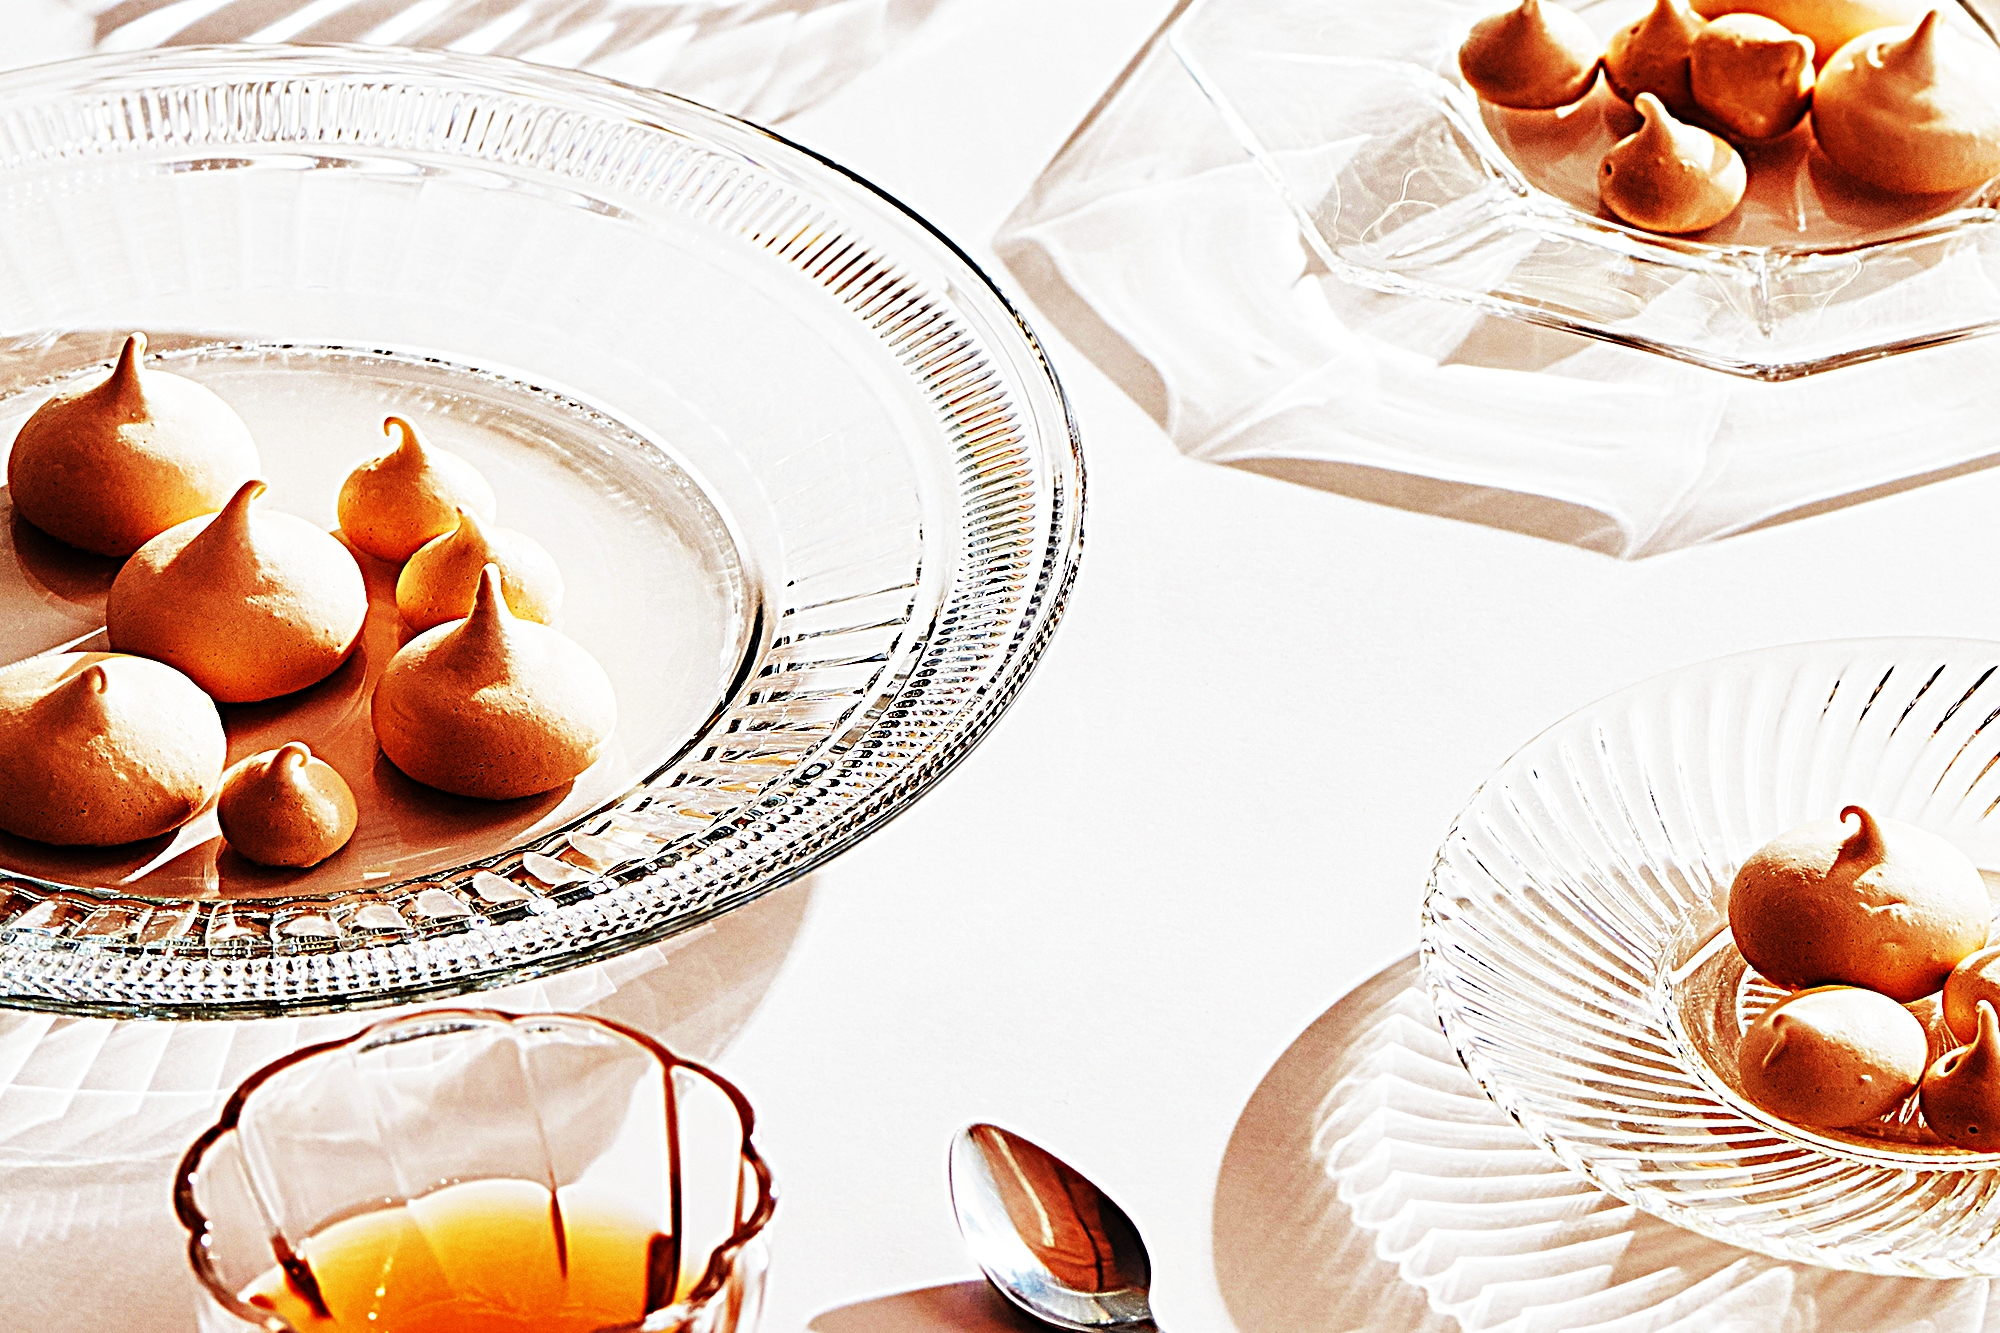 Stupid-Easy Recipe for Meringues (#1 Top-Rated)